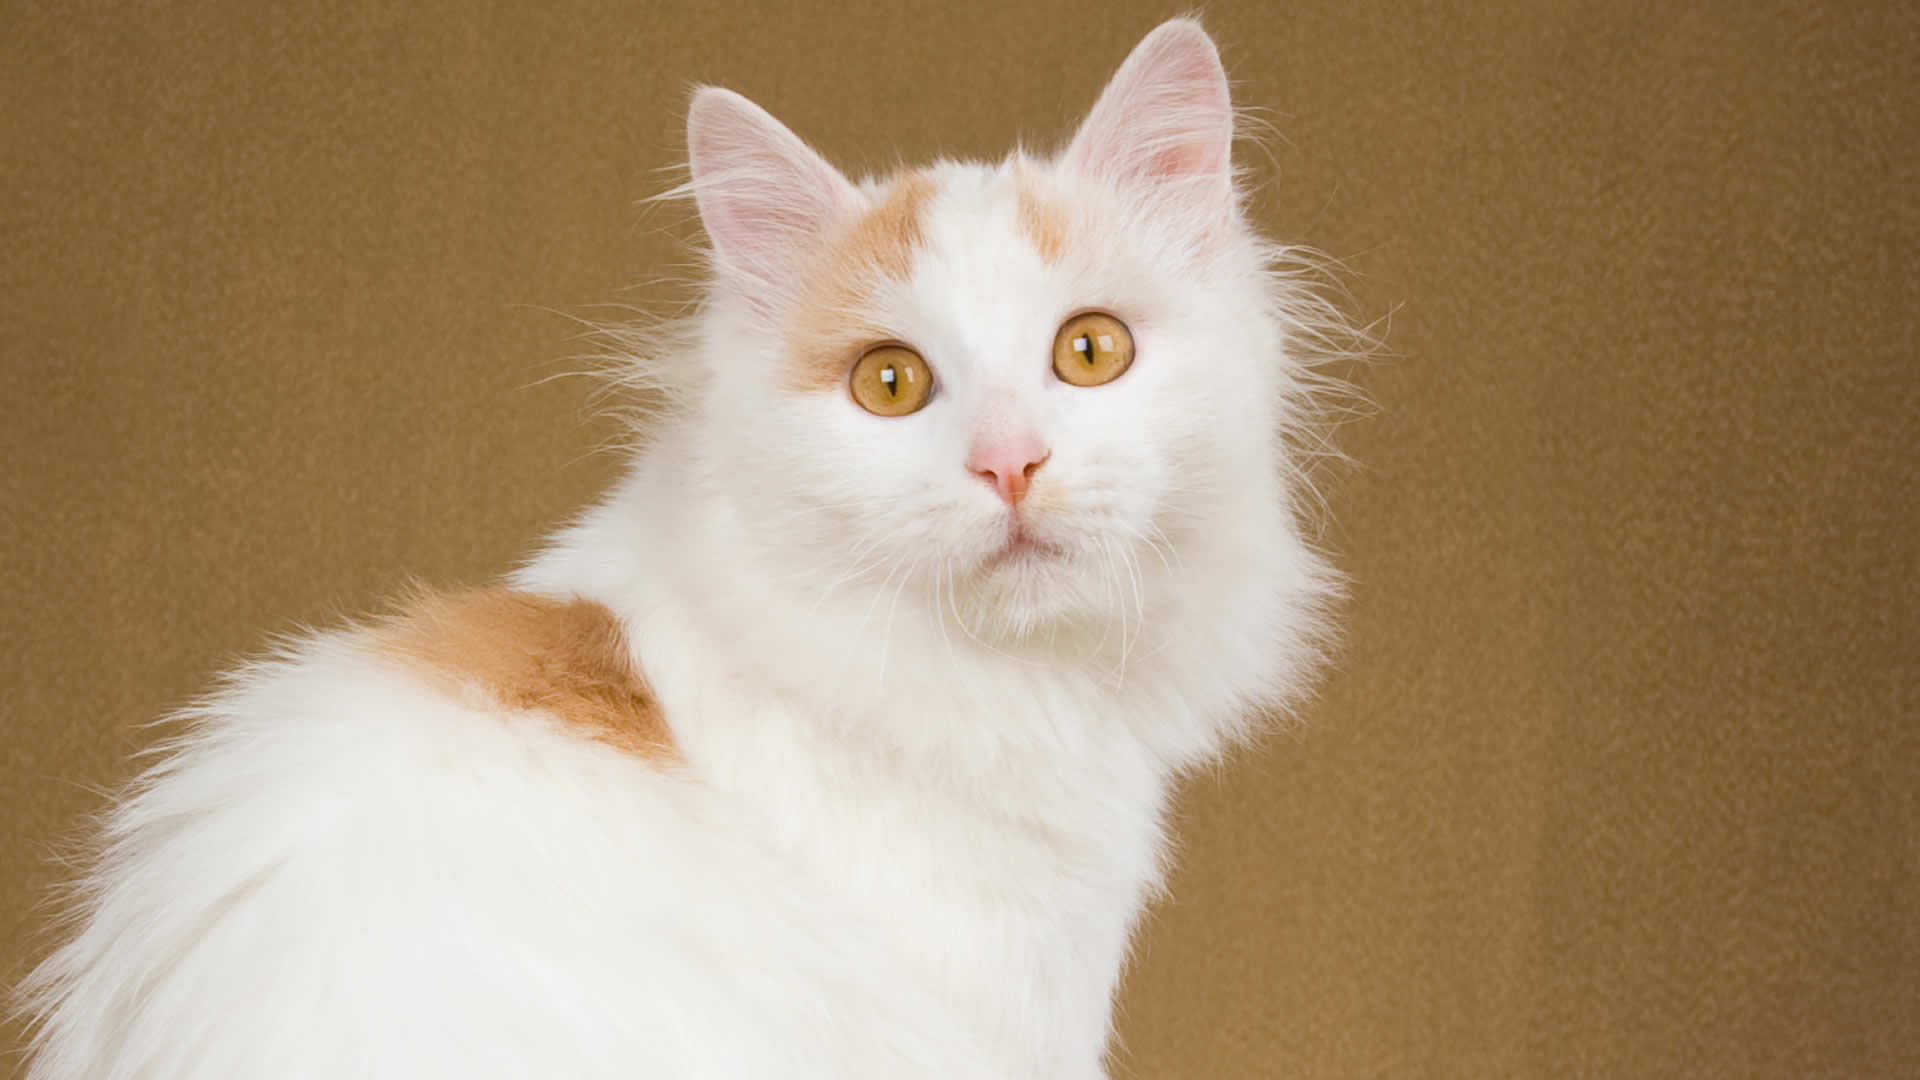 The Turkish Van can only have two eye colors – either yellow or blue